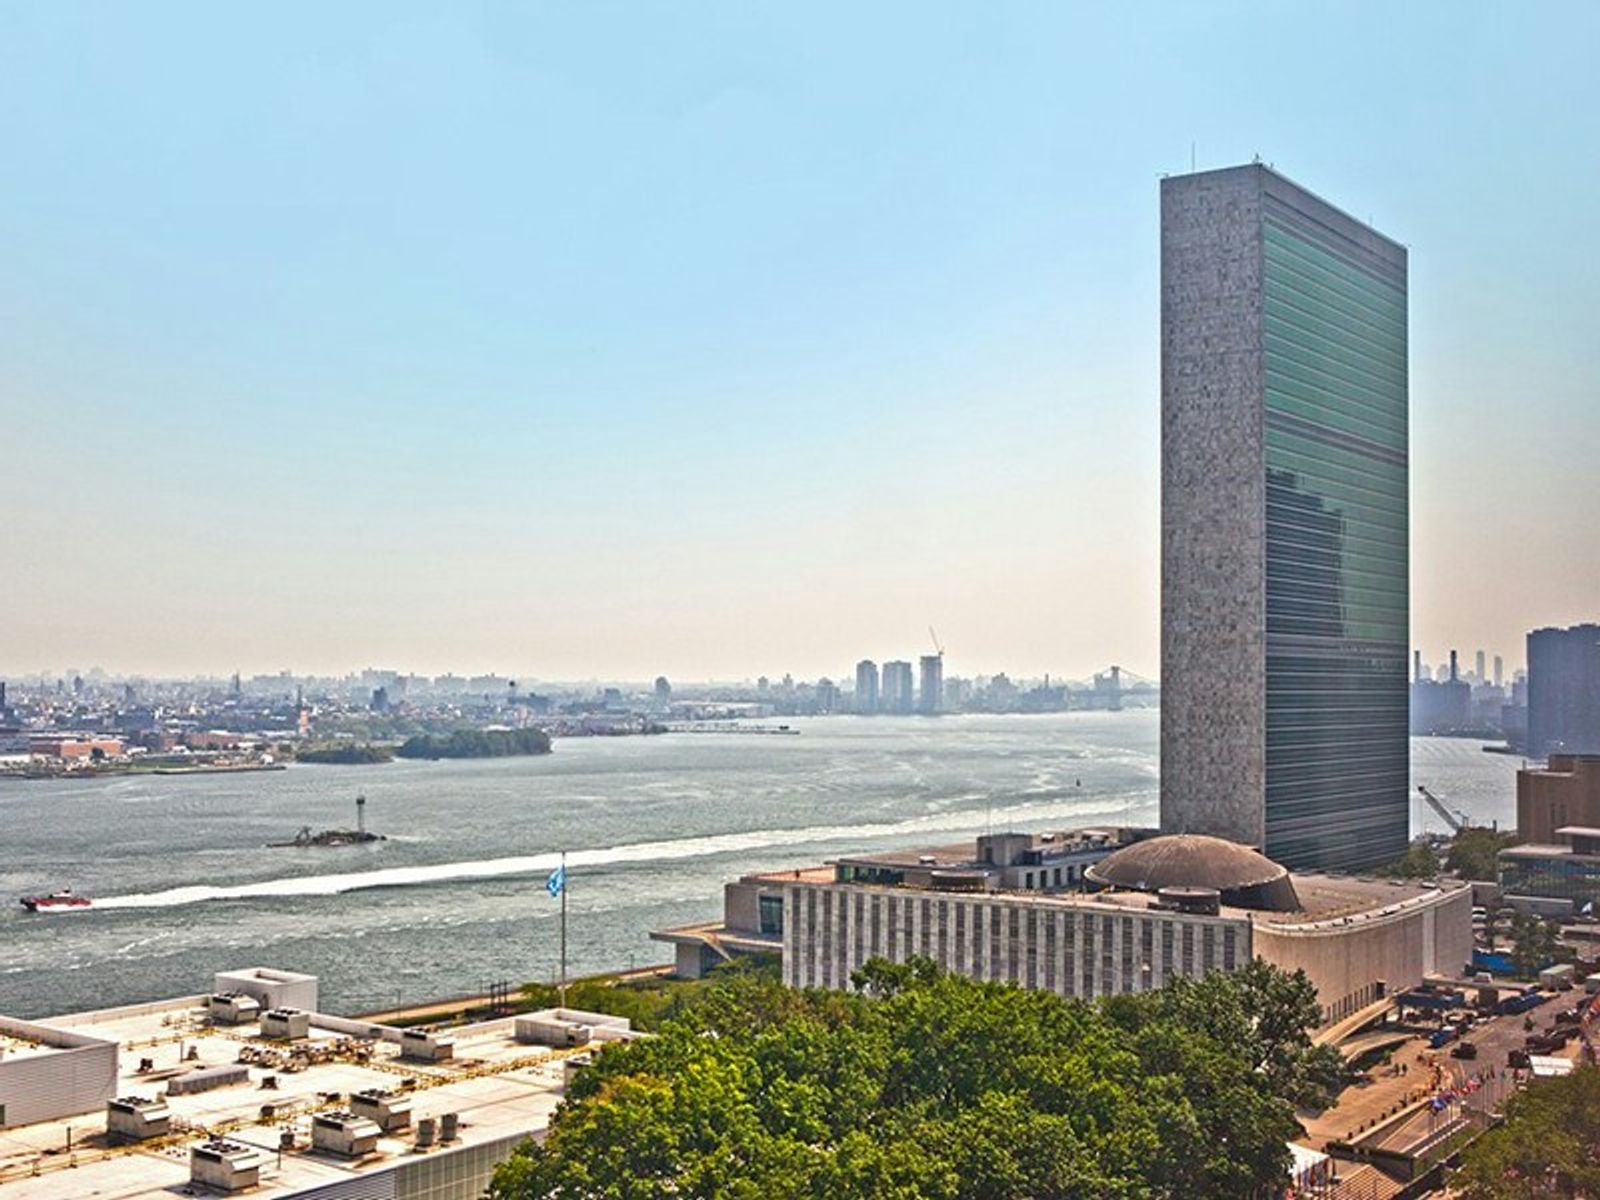 845 United Nations Plaza